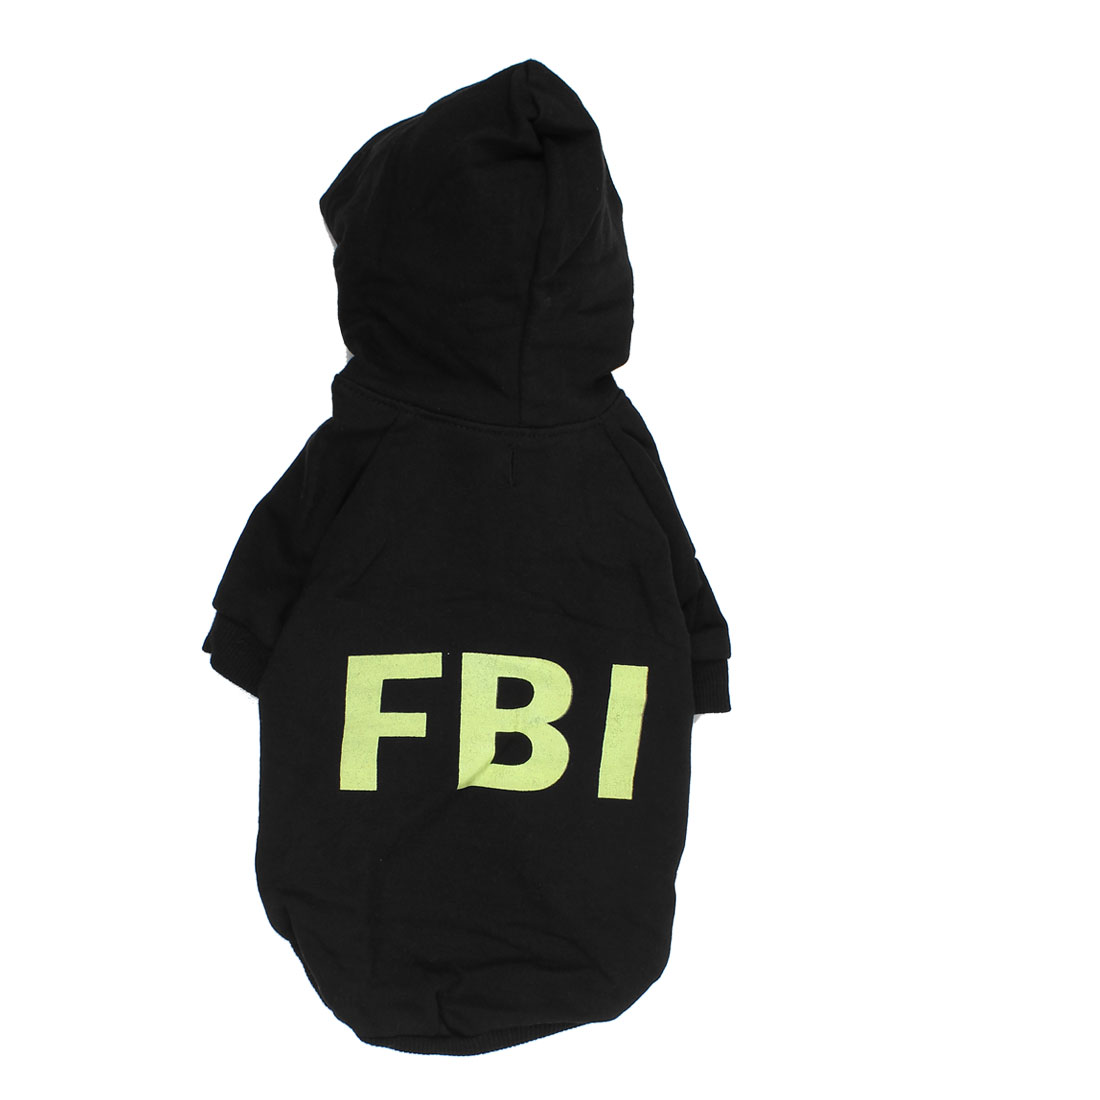 FBI Pet Doggie Yorkie Autumn Clothing Hoodie Coat Apparel Costume Black Size XS